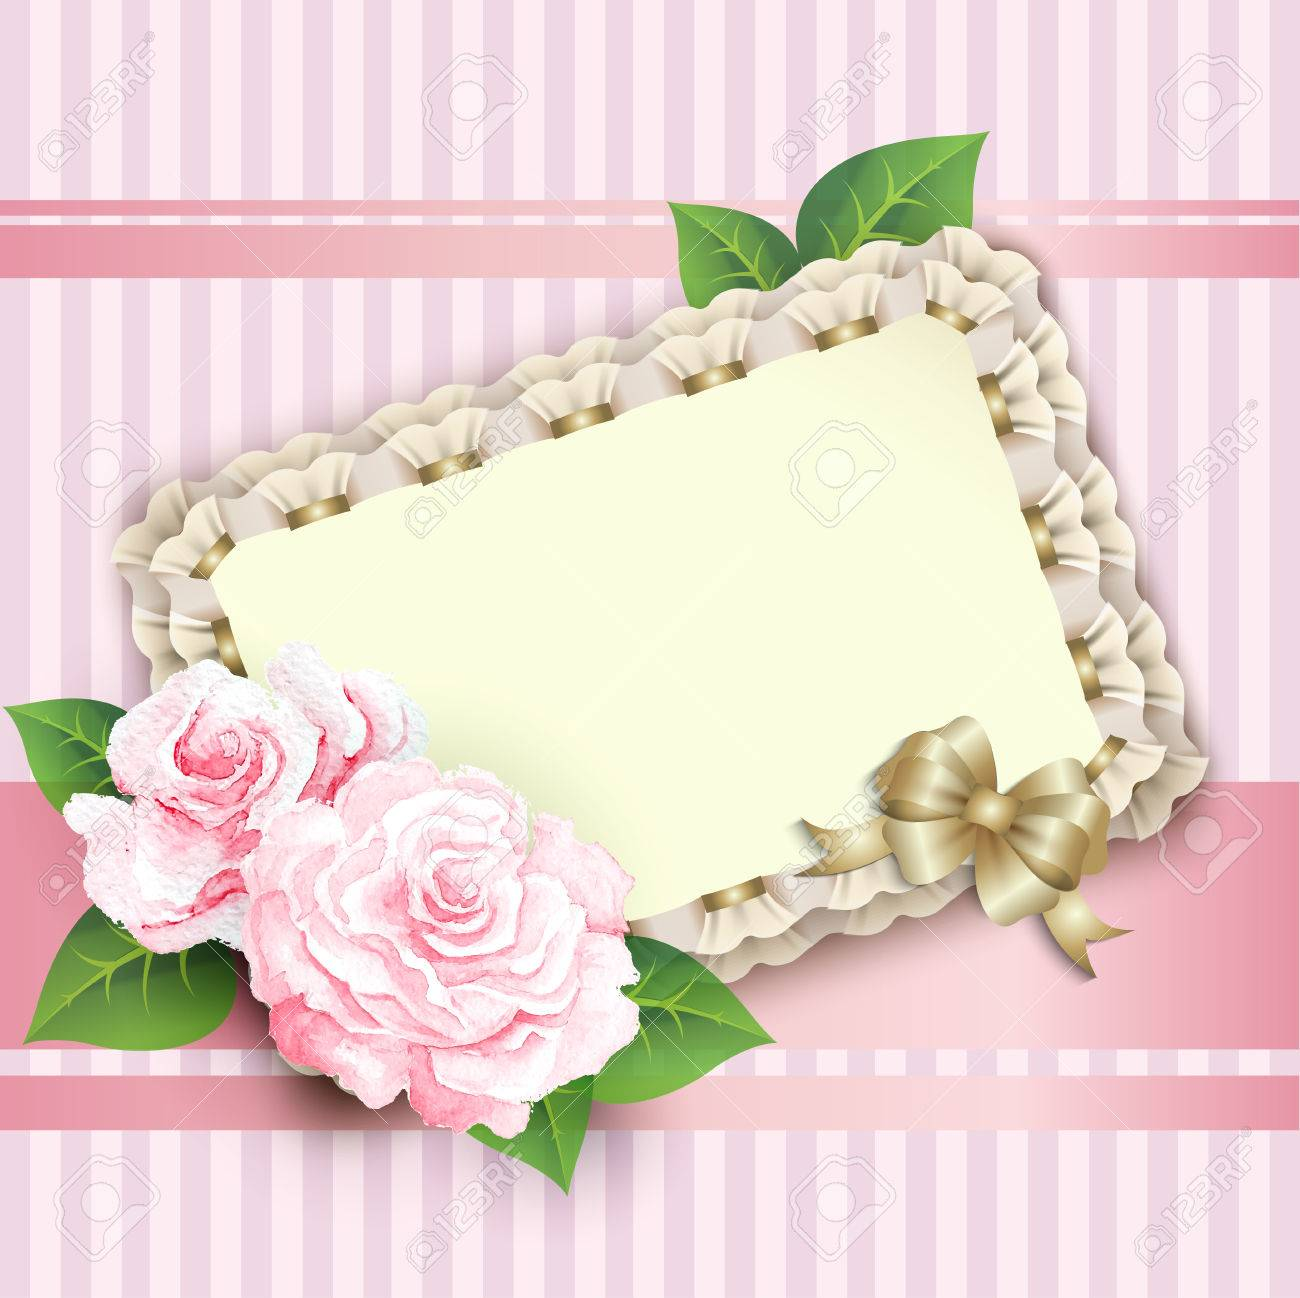 Ornate pink frame decoration with white pattern elegant vintage ornate pink frame decoration with white pattern elegant vintage greeting card design happy birthday m4hsunfo